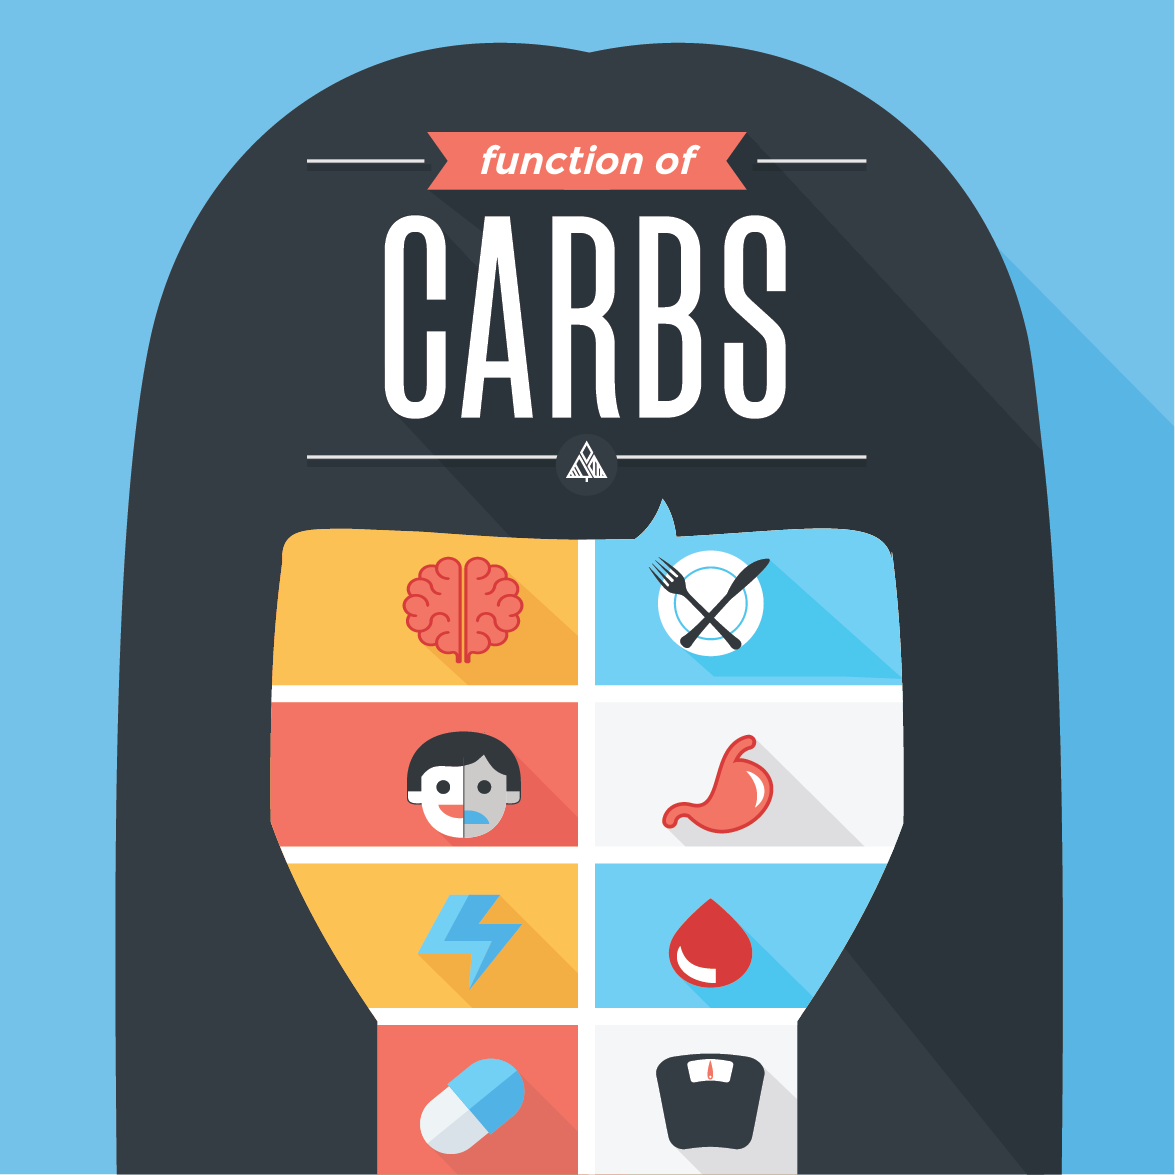 8 Function of Carbohydrates in Our Bodies